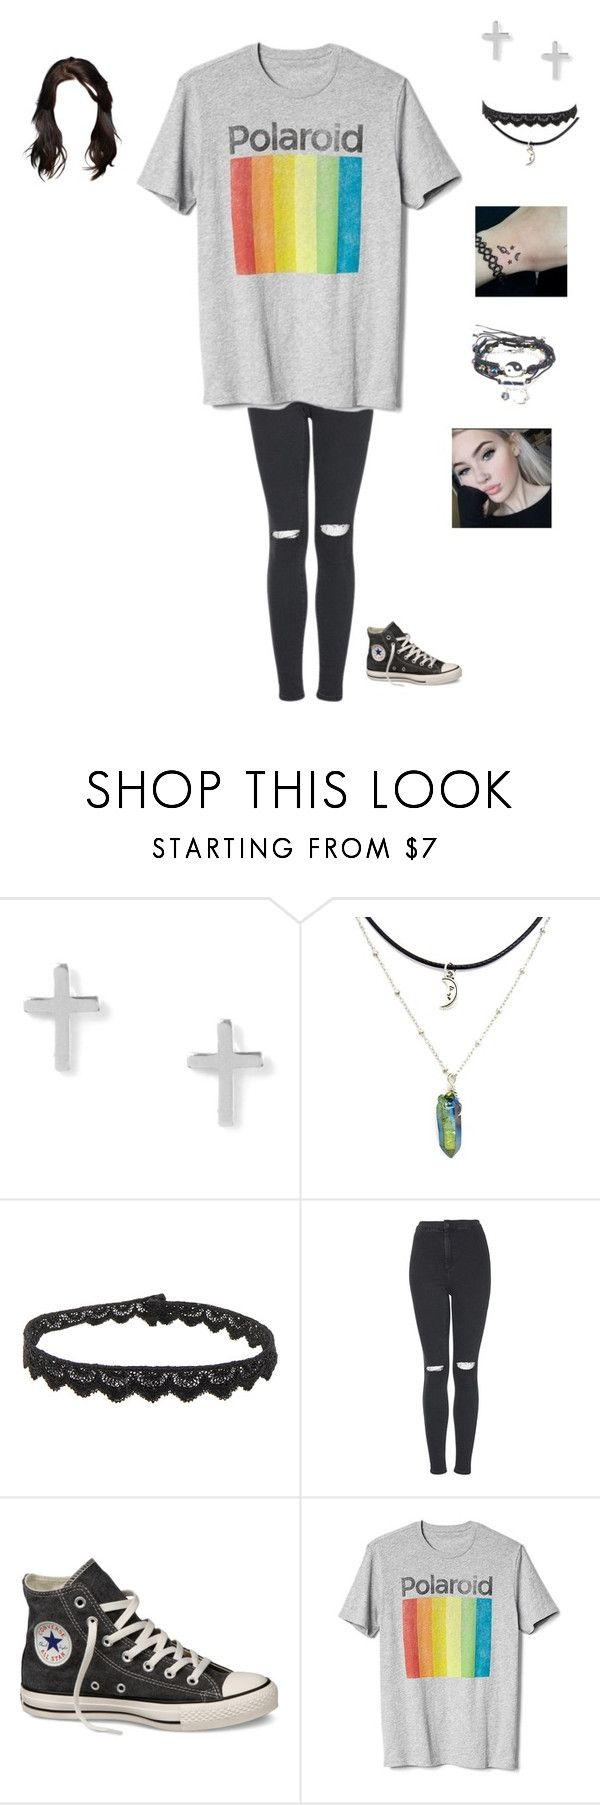 """Untitled #122"" by tori-is-trash ❤ liked on Polyvore featuring Yves Saint Laurent, Topshop, Converse, Gap and Hot Topic"